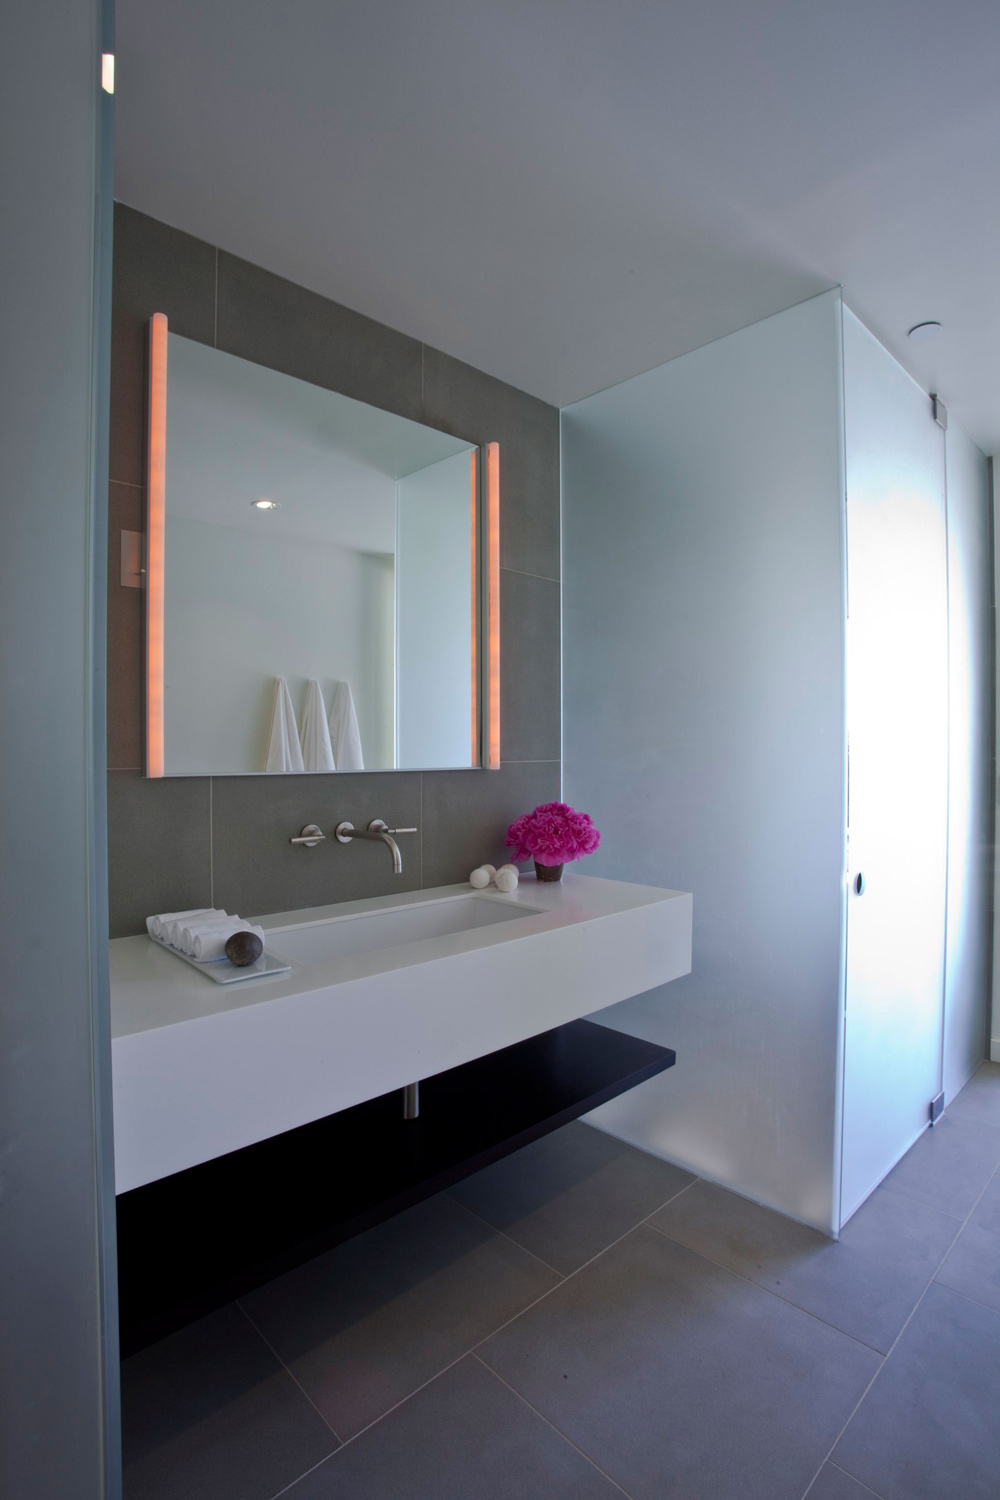 Bathroom Mirror, Lighting, Elegant Modern Interior in Southern California